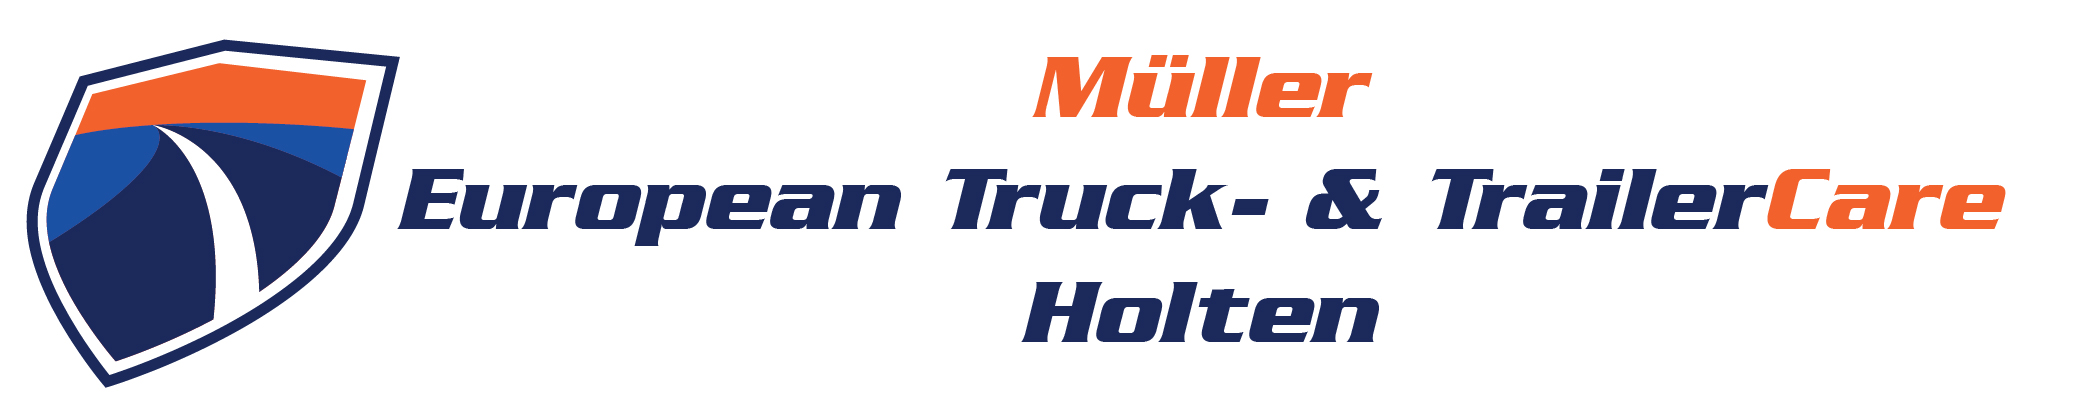 muller-european-truck-trailer-care holten